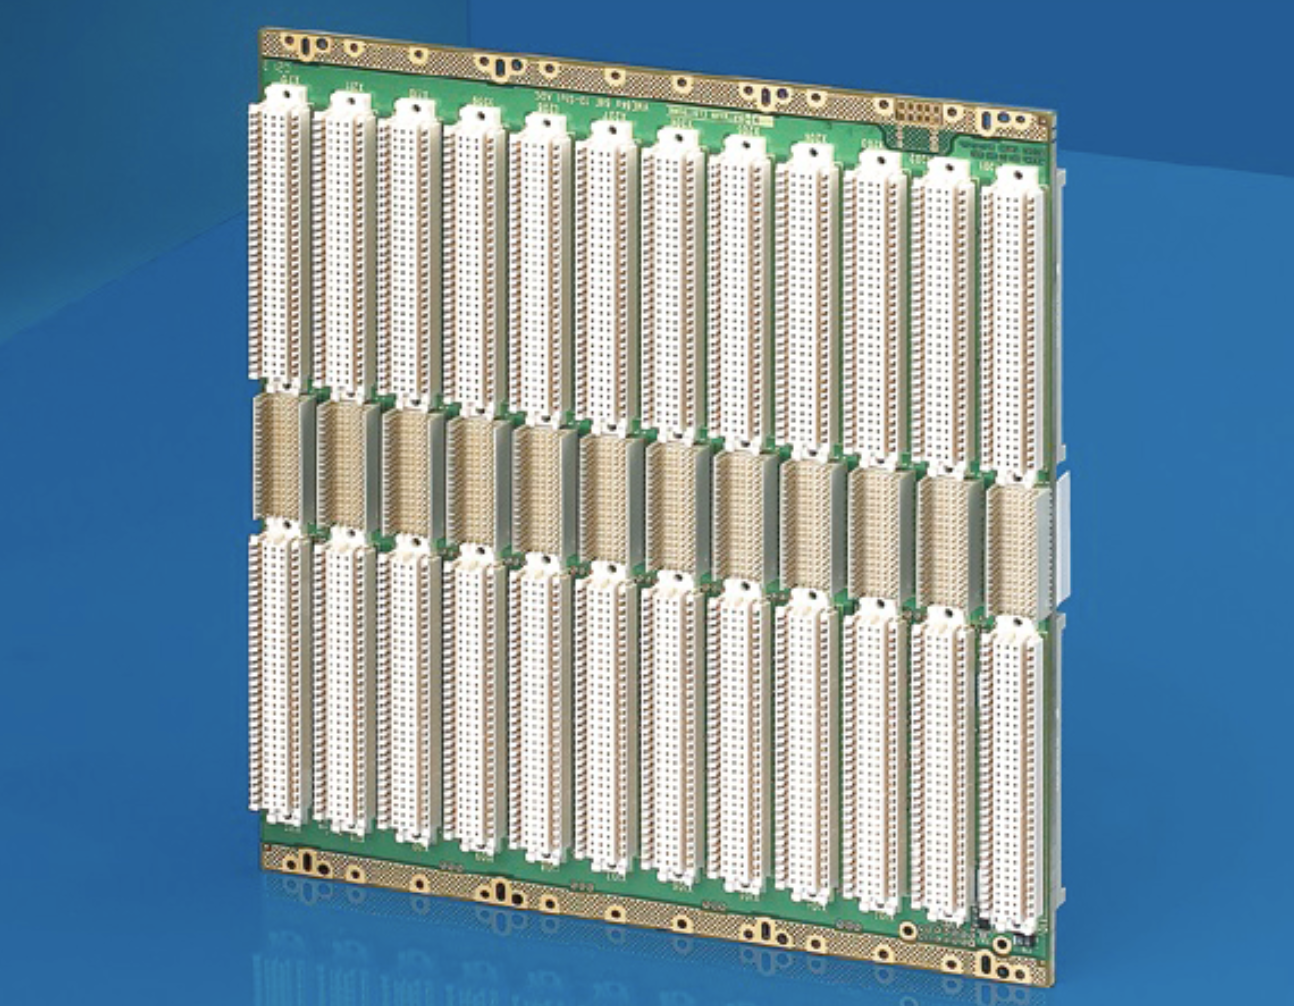 Component Placement Strategies in Multi-board PCB Systems